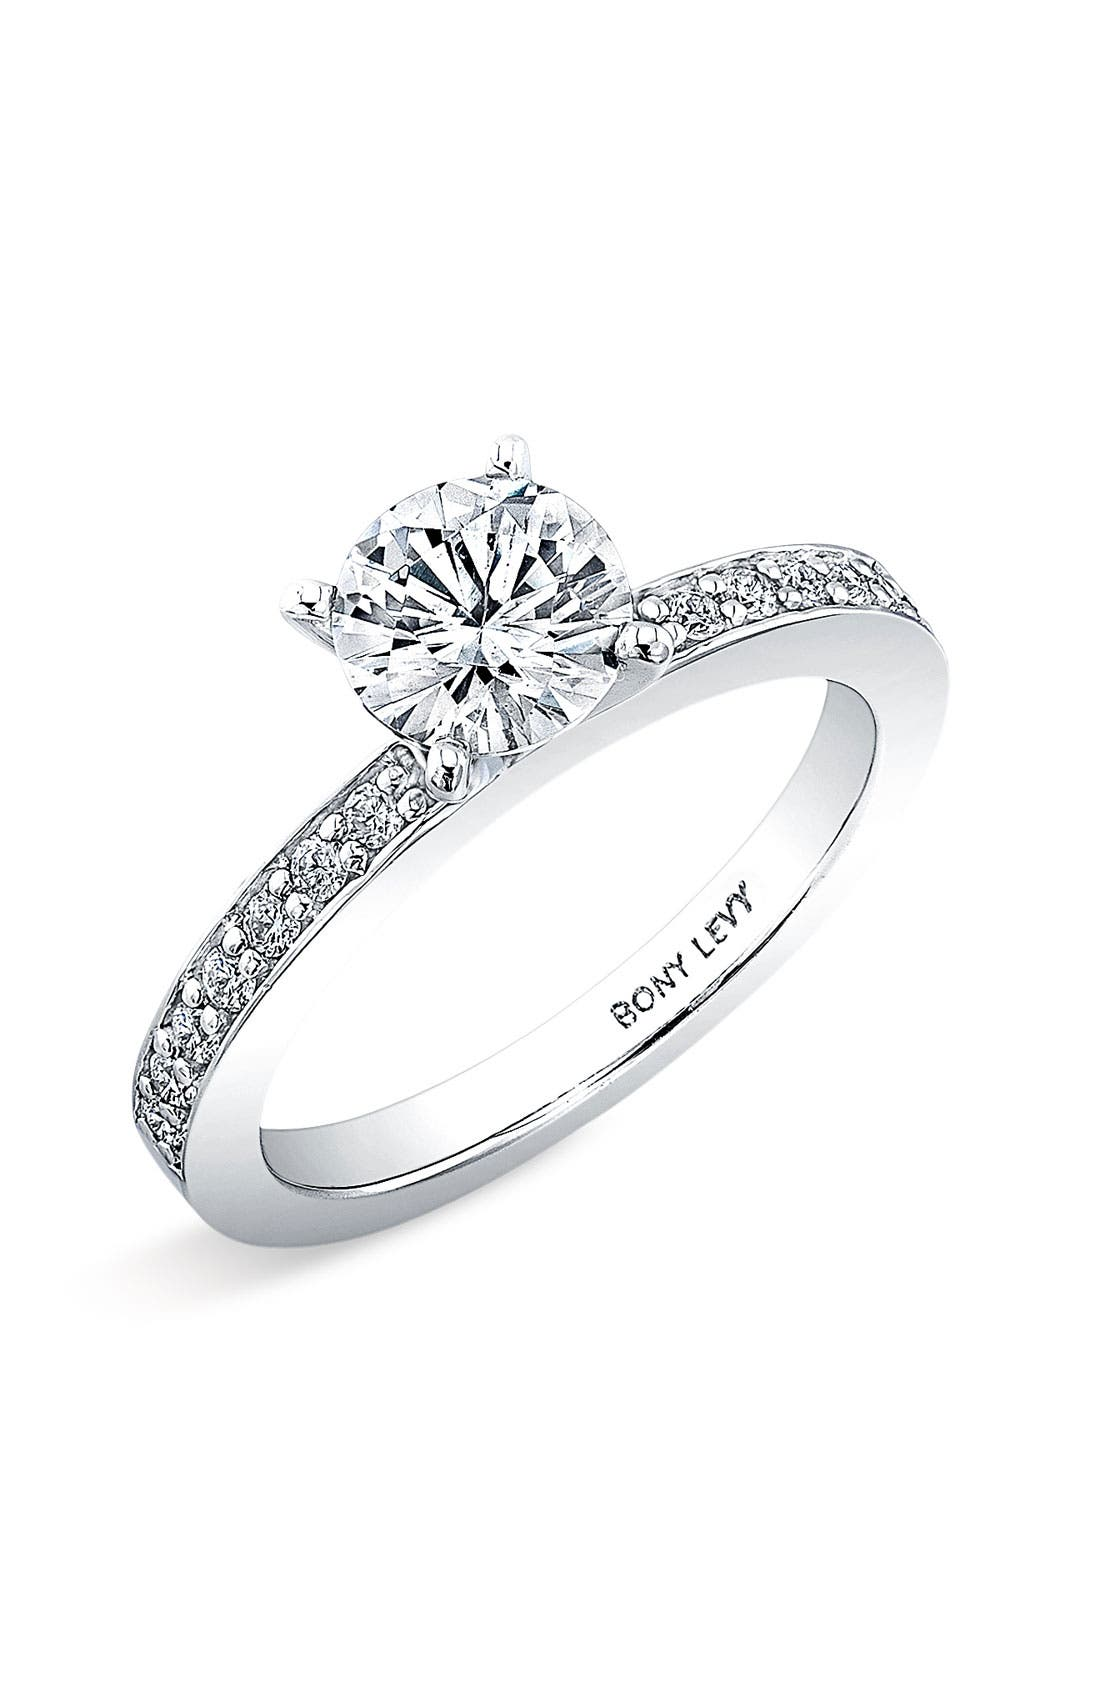 Bony Levy Channel Set Diamond Engagement Ring Setting (Nordstrom Exclusive)